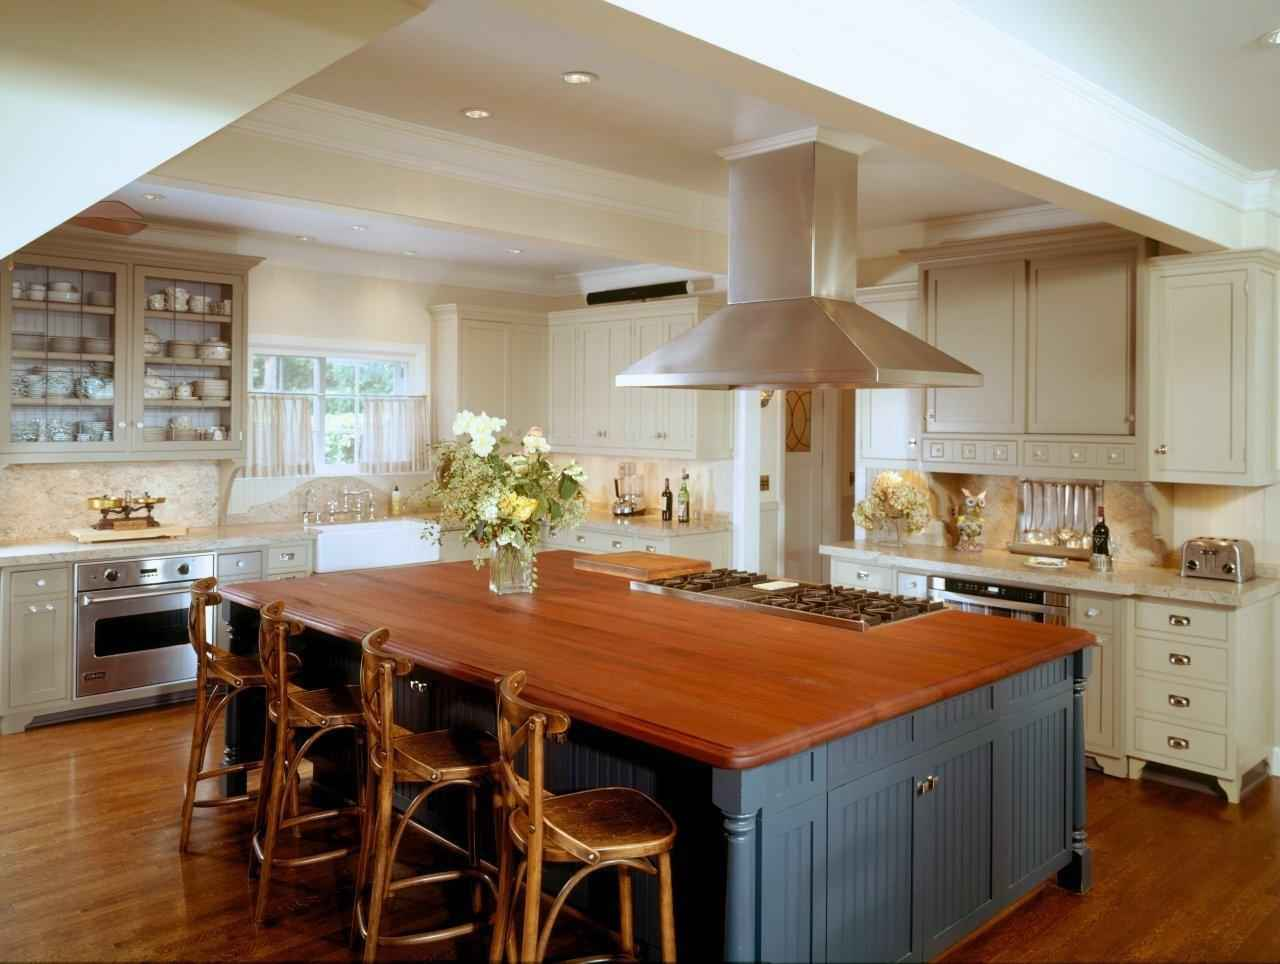 Inexpensive Countertop Ideas For Your Kitchens on Countertop Decor  id=98397